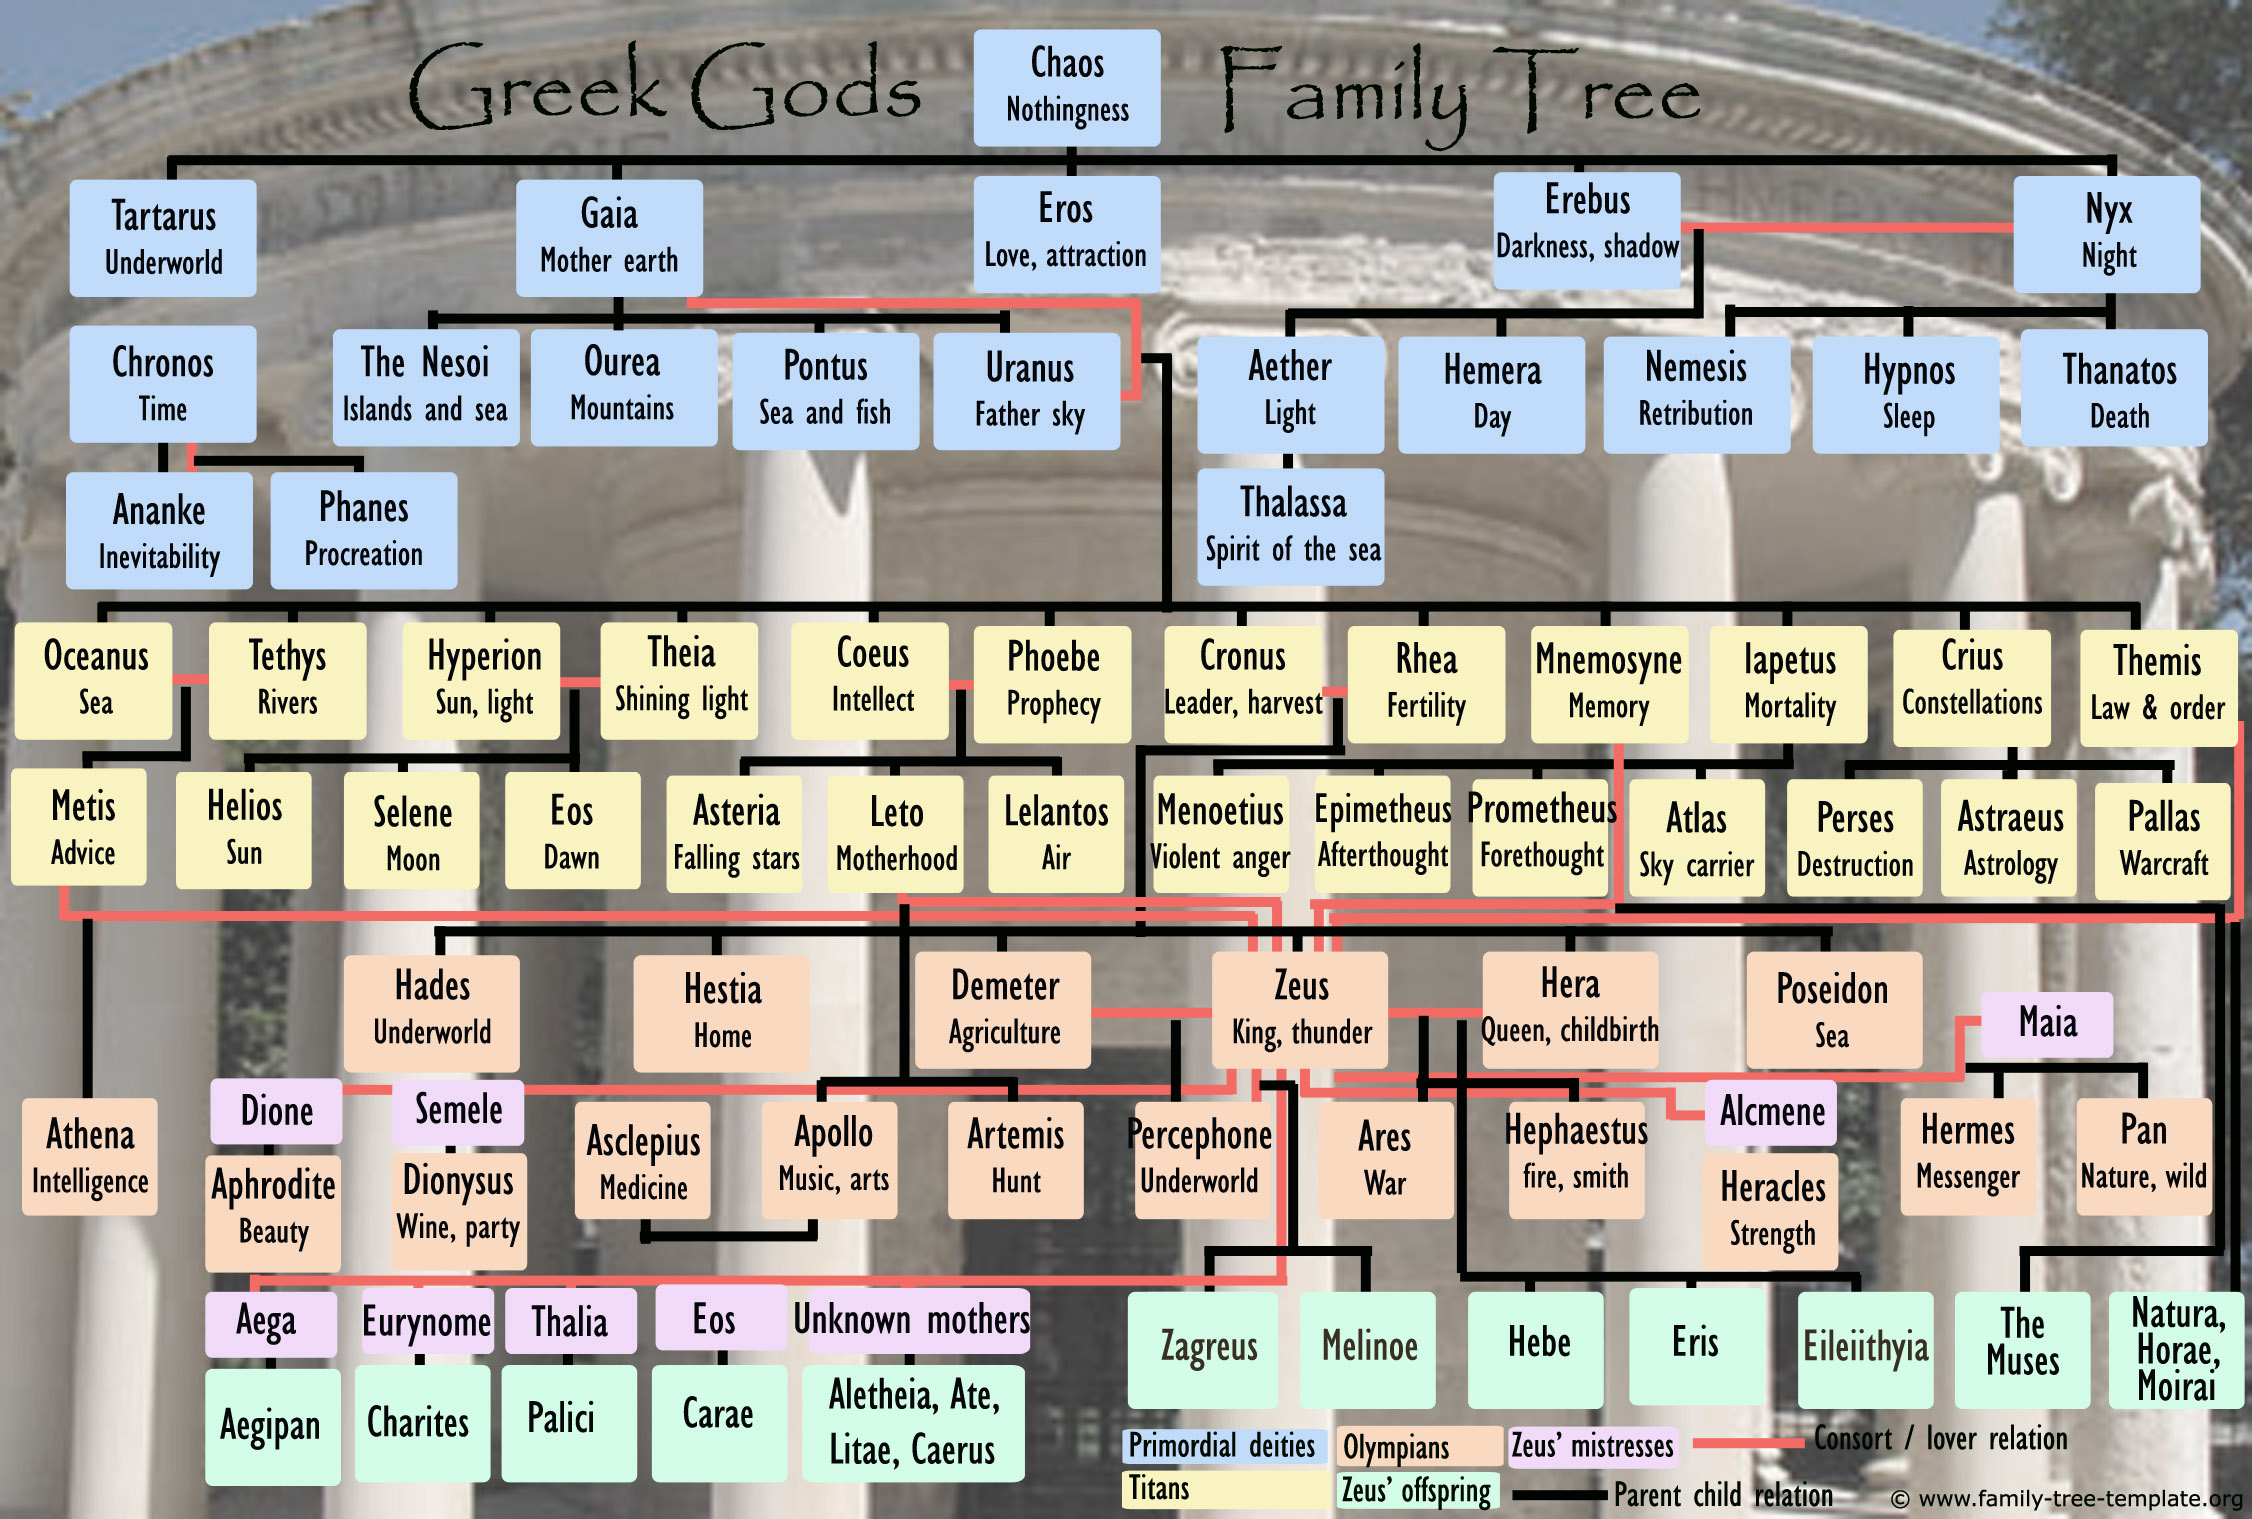 Greek mythology family tree free to print with both primordials, Titans and Olympians.